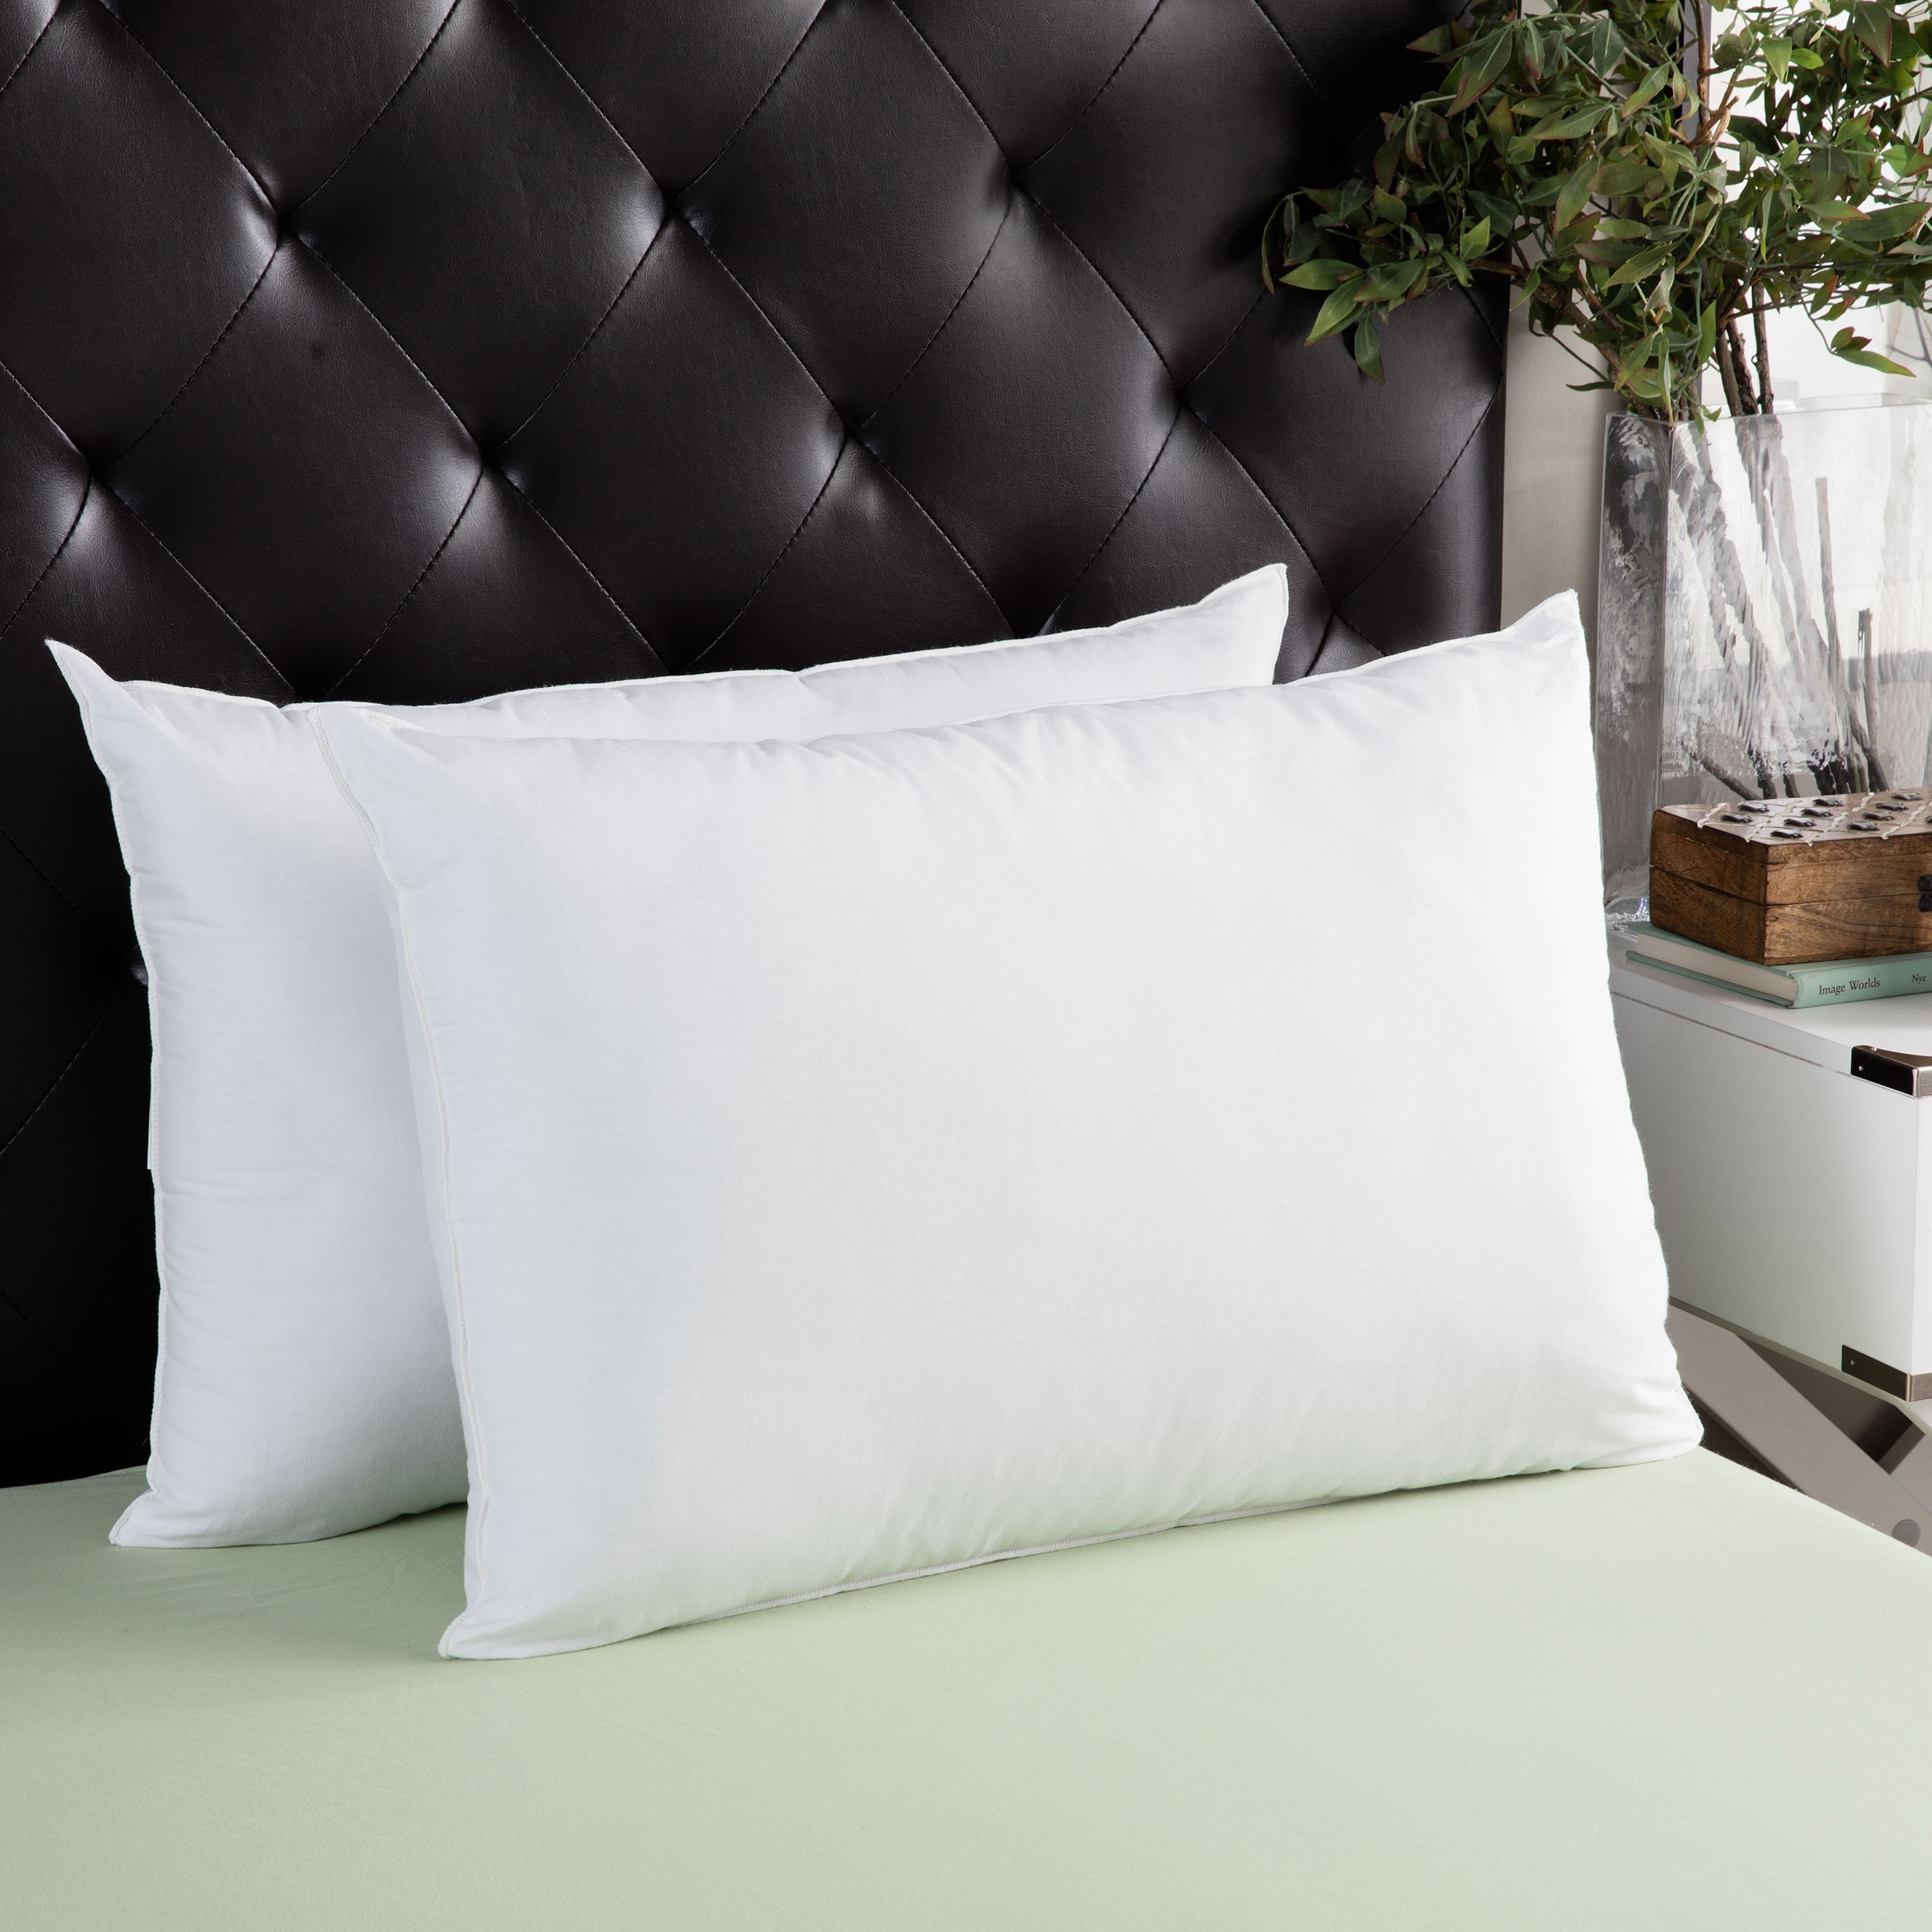 Set of 2 Down Alternative Overfilled of Micro-Denier fiber Bed Pillows